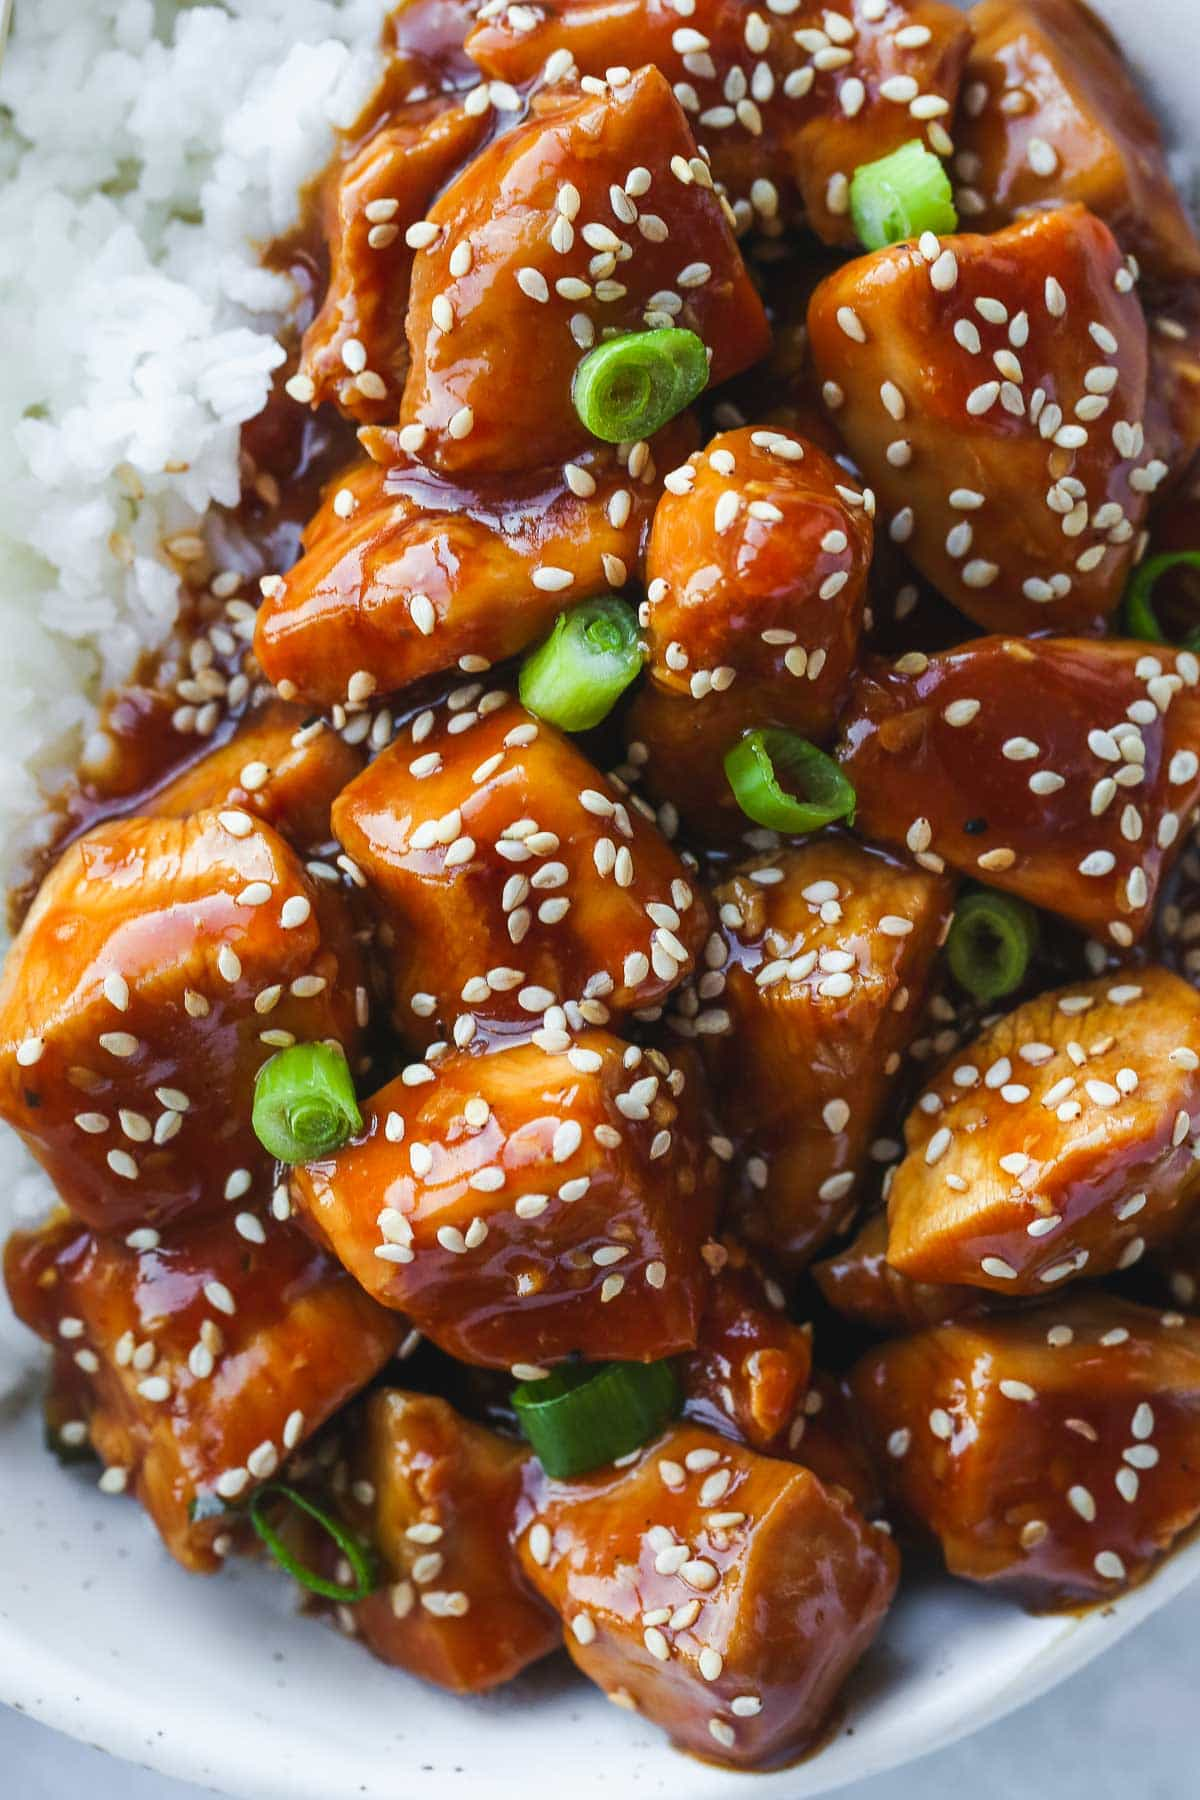 Close up shot of honey sesame chicken over rice, garnished with sesame seeds and green onion